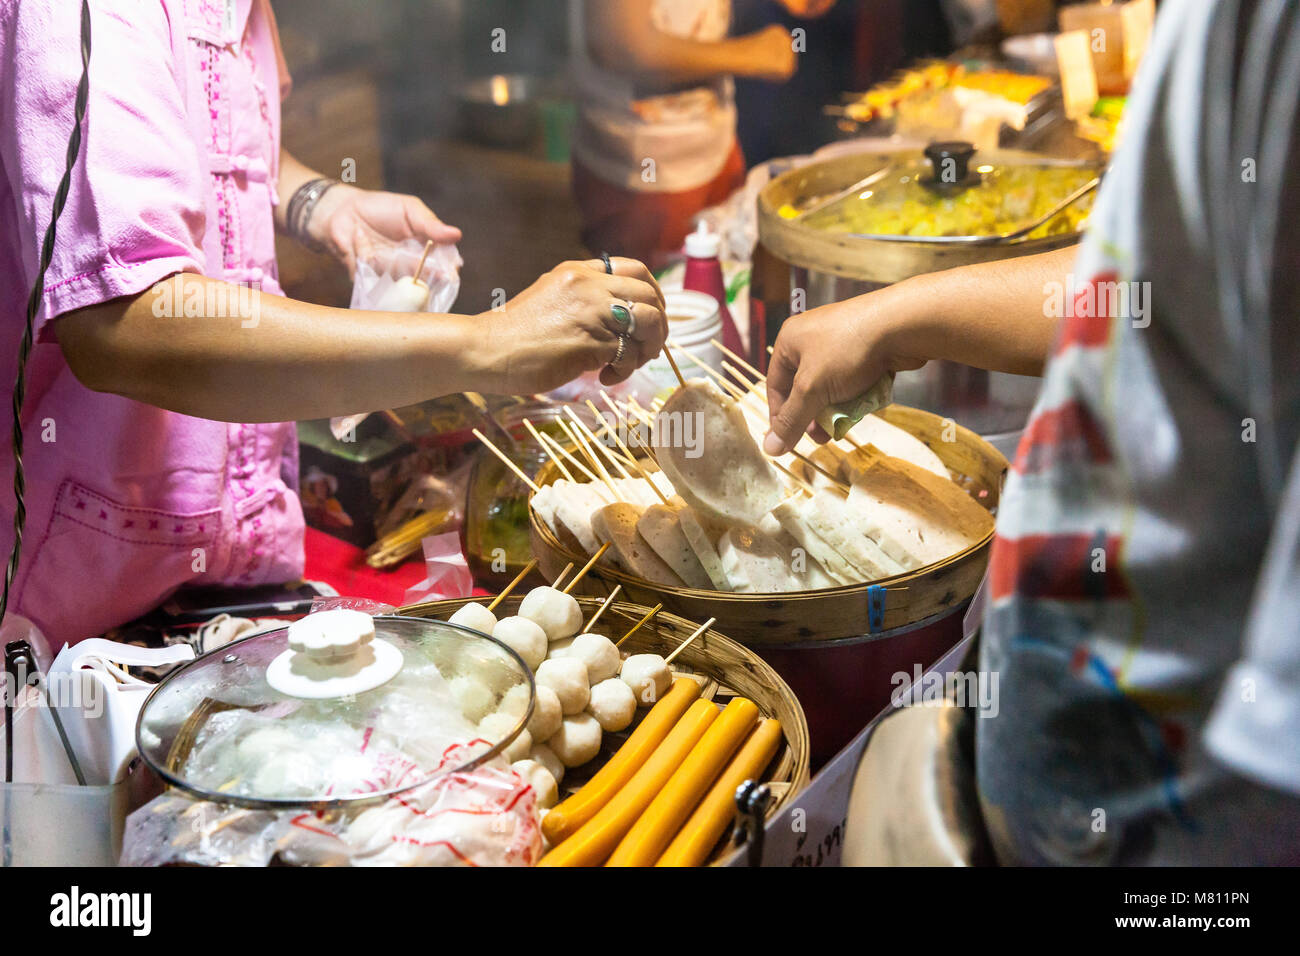 CHIANG MAI, THAILAND - AUGUST 21: Man buys street food at the Sunday Market (Walking Street) on August 21, 2016 - Stock Image